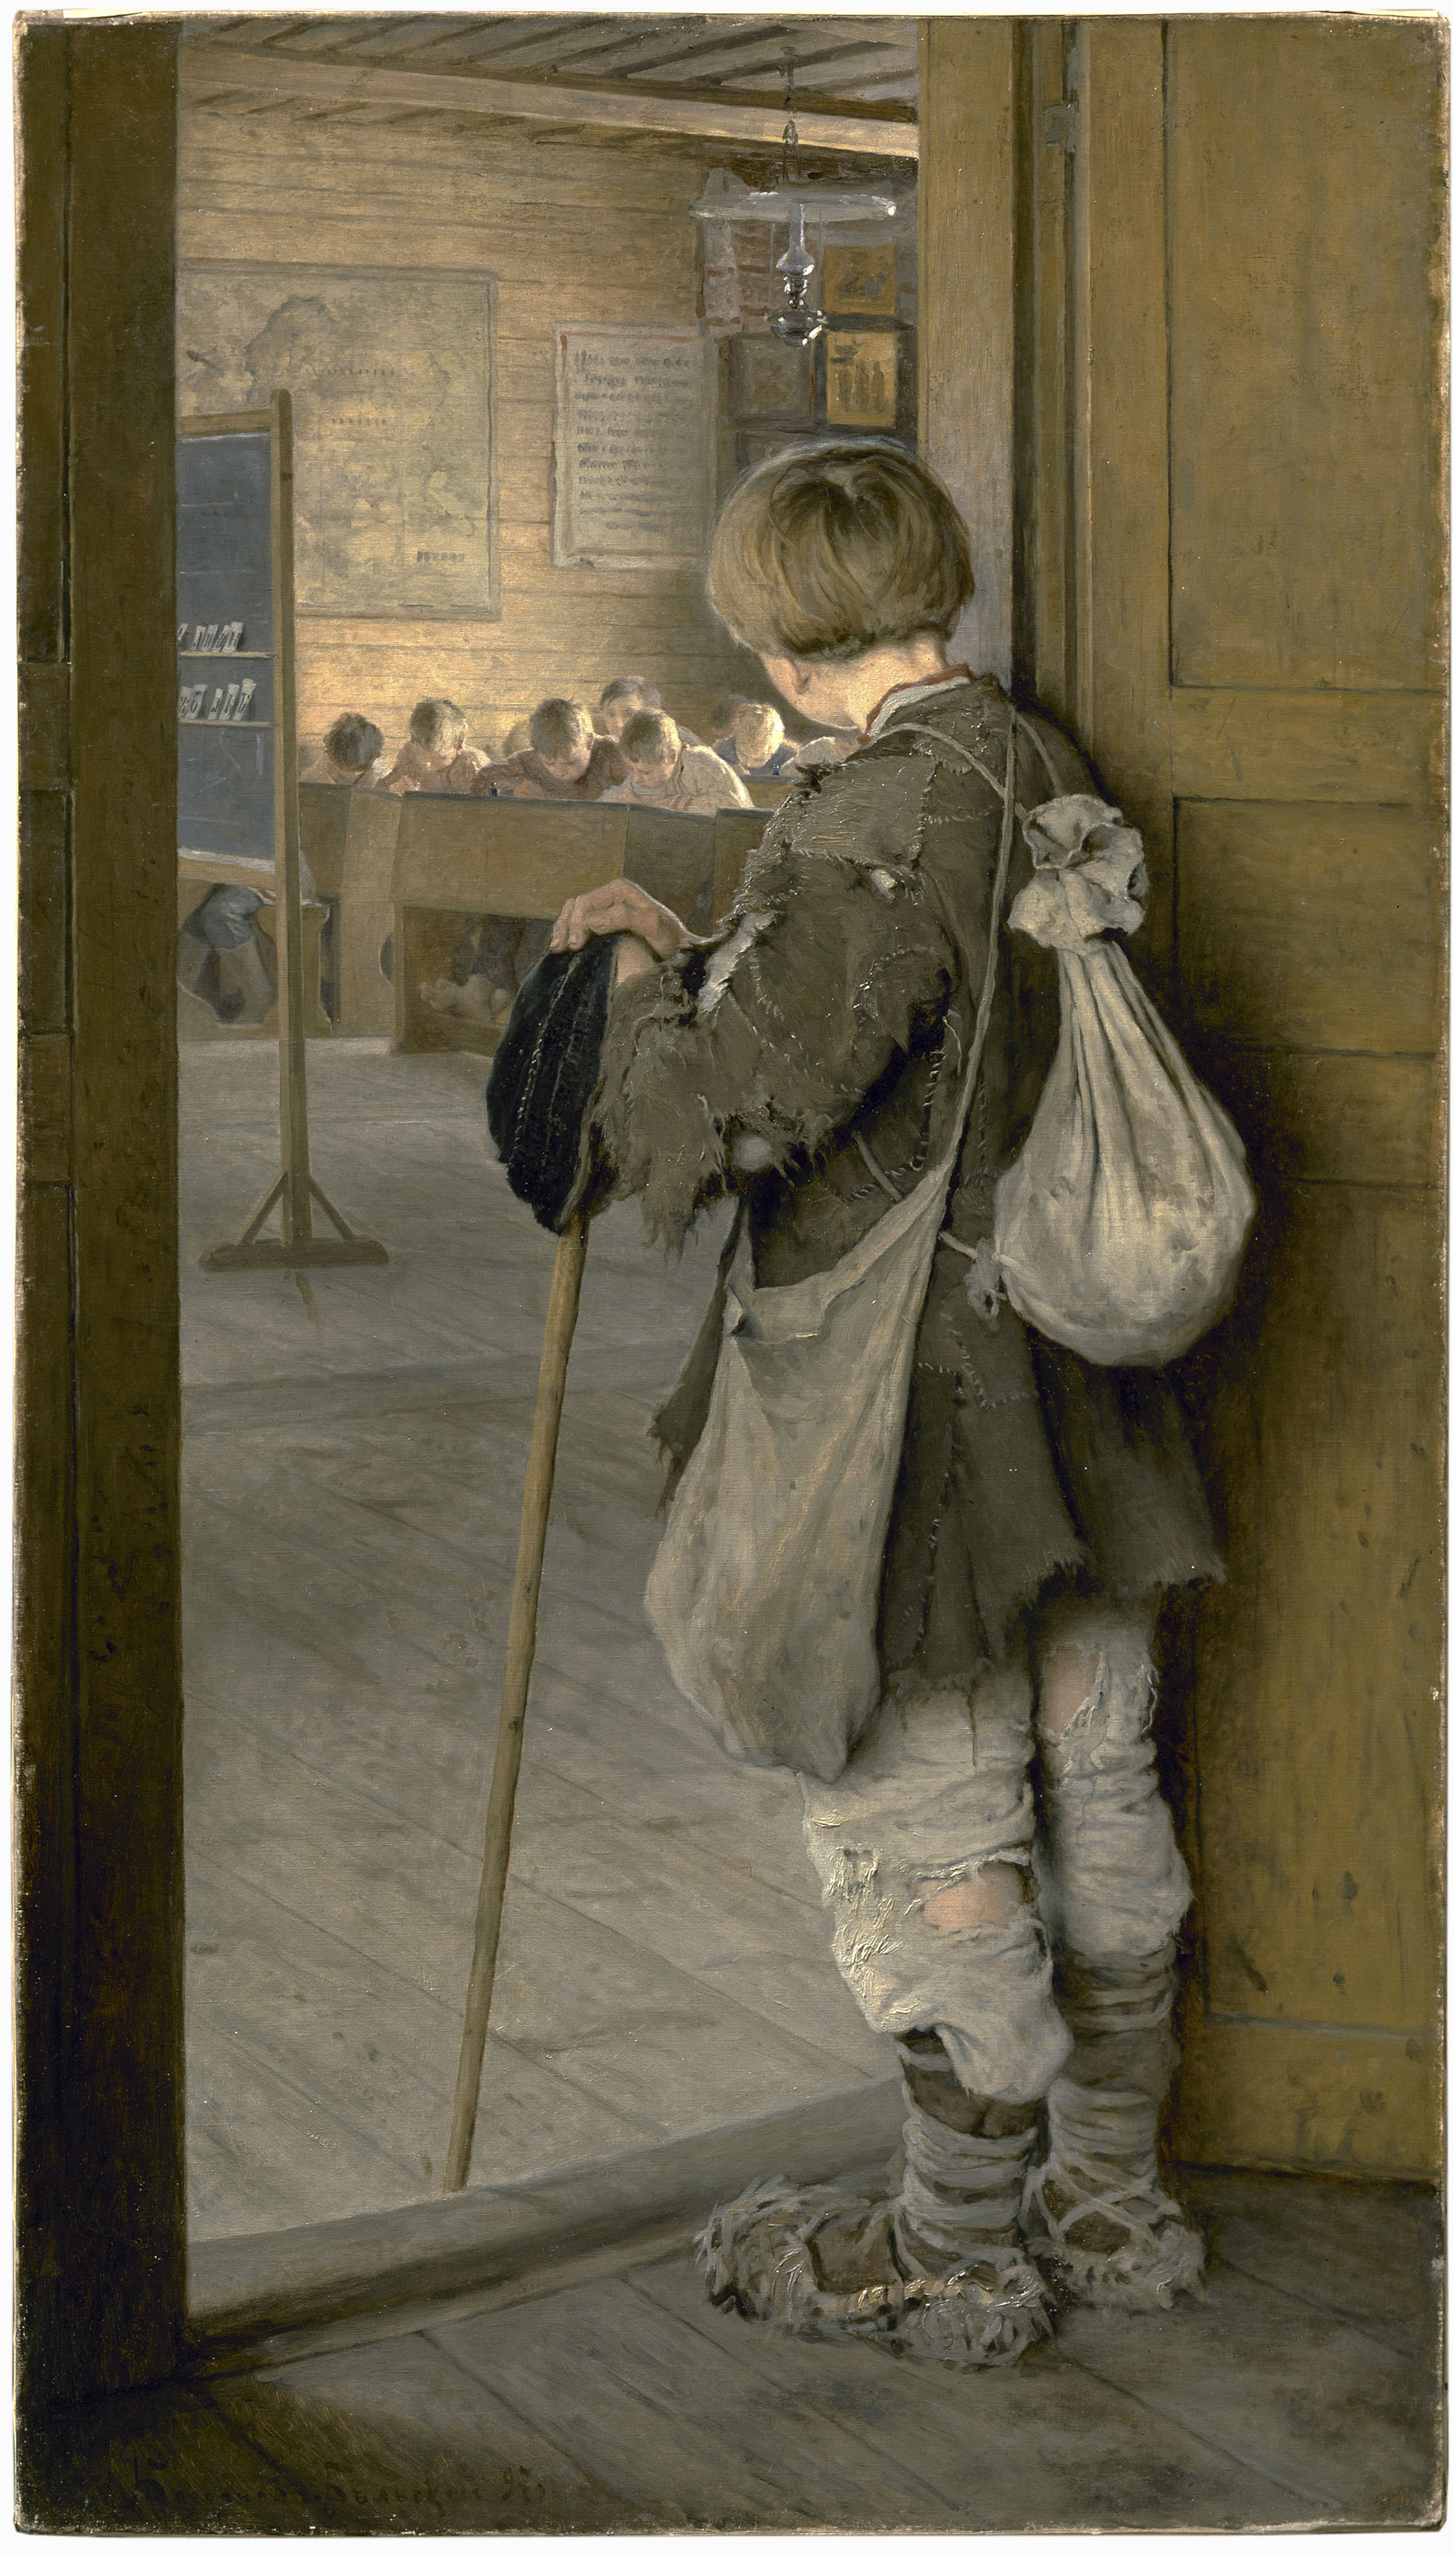 File1897 Bogdanov-Belsky At School Doors.jpg & File:1897 Bogdanov-Belsky At School Doors.jpg - Wikimedia Commons